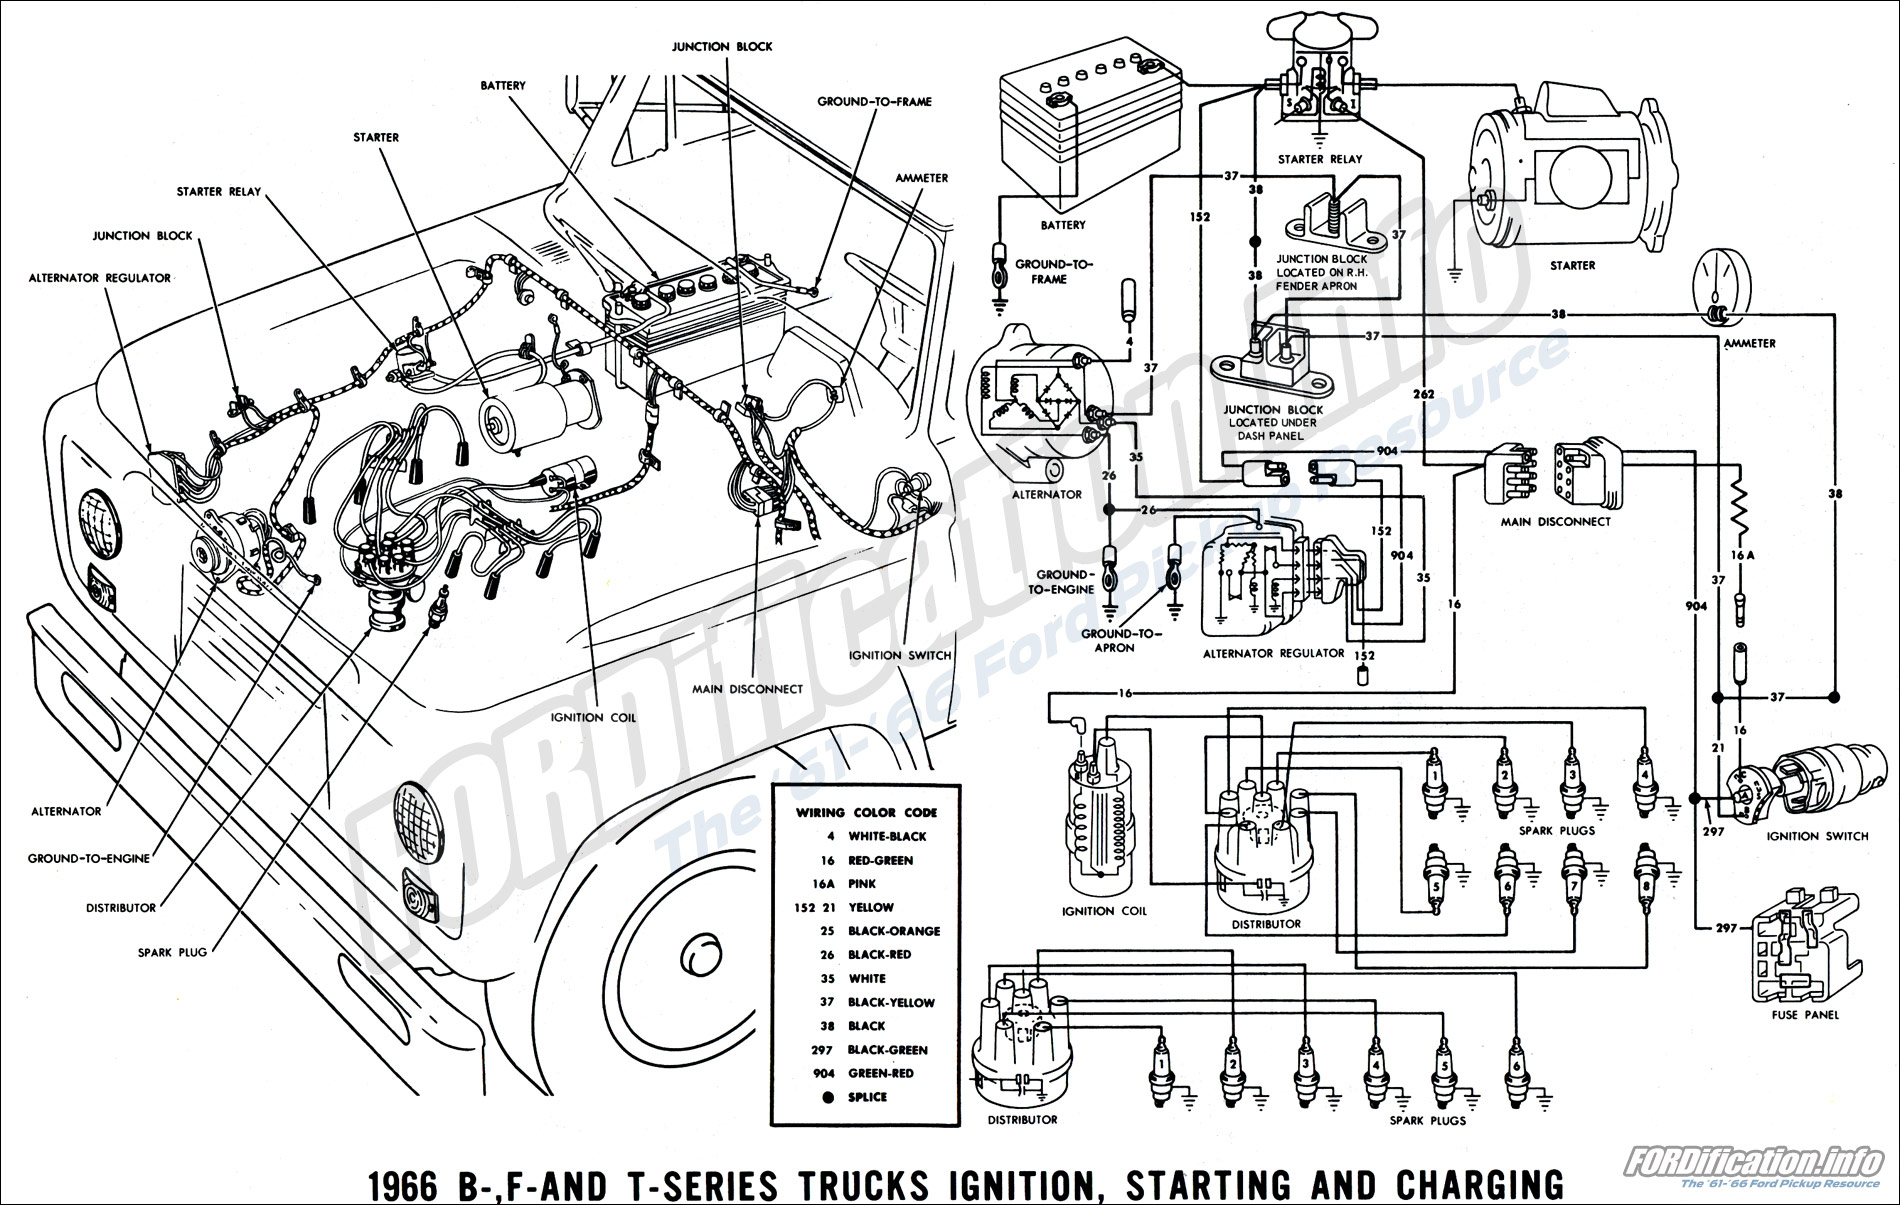 [DIAGRAM_38IU]  1966 Ford Truck Wiring Diagrams - FORDification.info - The '61-'66 Ford  Pickup Resource | 1966 Ford F100 Engine Wiring Diagram Free Picture |  | FORDification.info